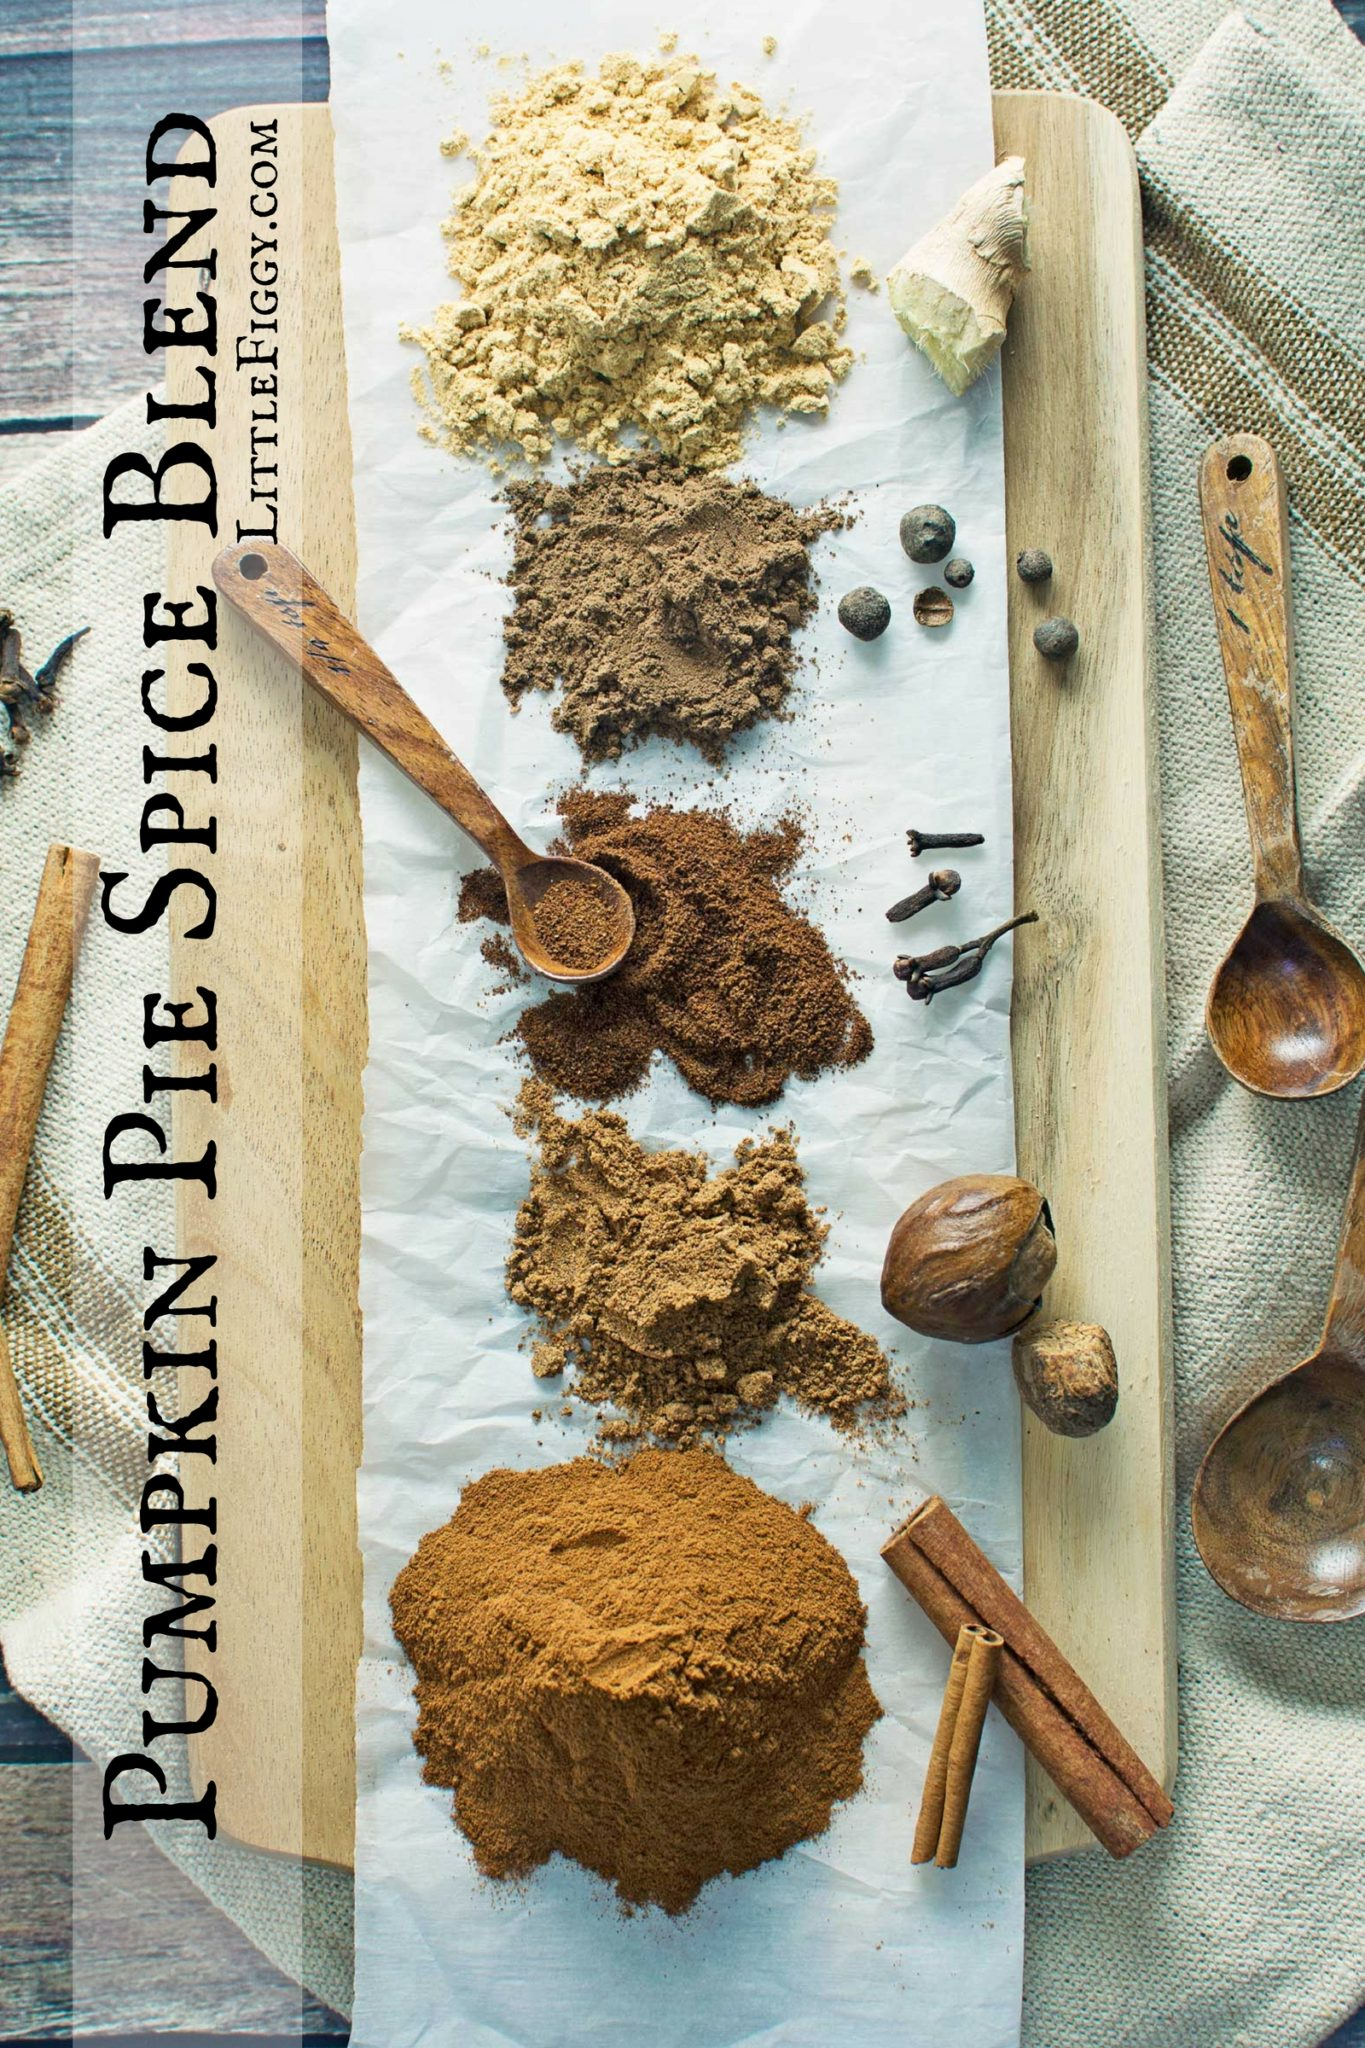 Pumpkin Pie Spice Blend, so easy to make and is perfect for all of your favorite traditional and not so traditional fall dishes, from pumpkin pie to curry. Making your own blends also makes for great Gifts from the Kitchen! Recipe @LittleFiggyFood